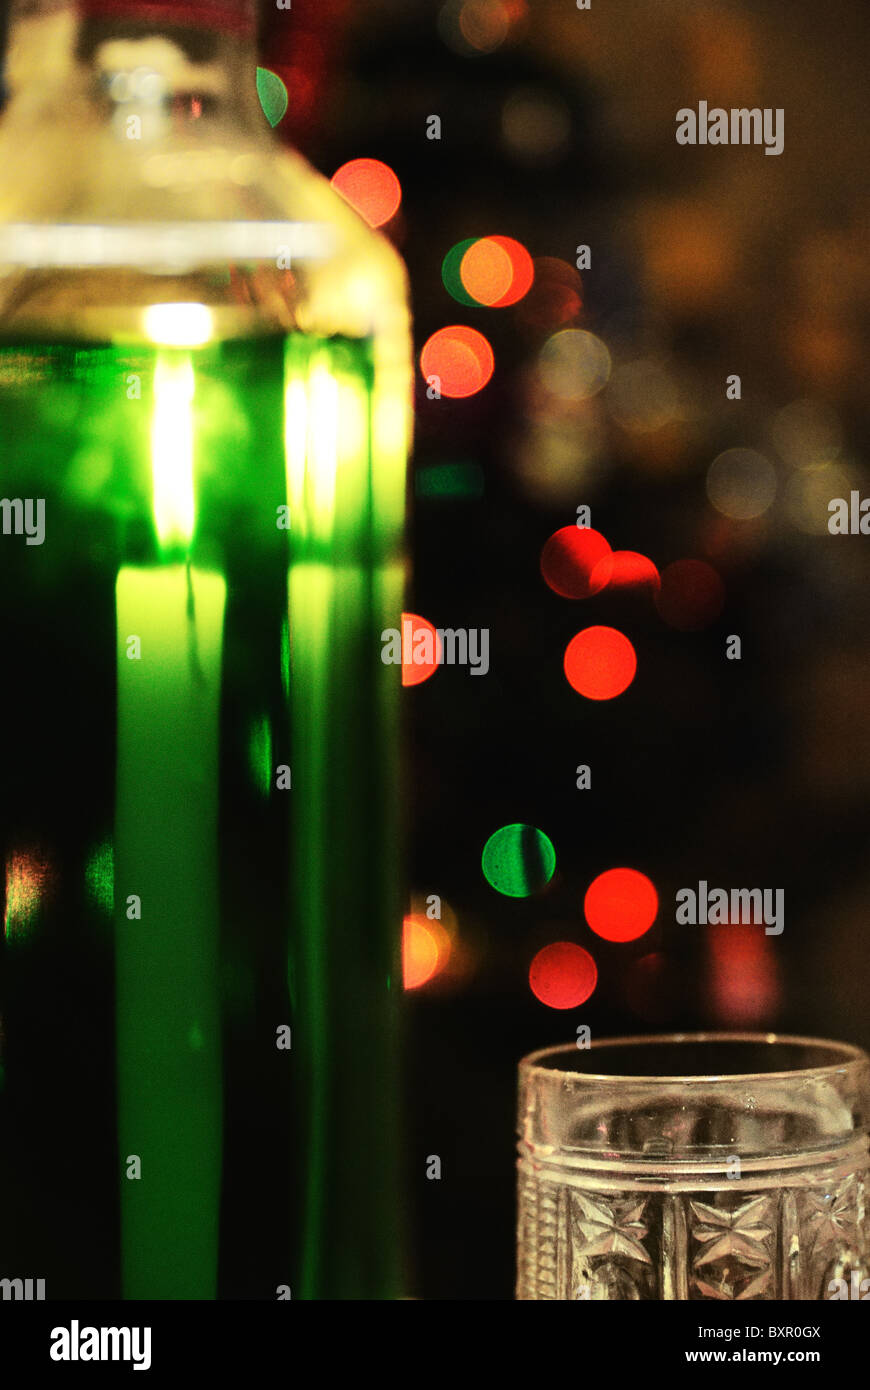 Absinthe night - Stock Image